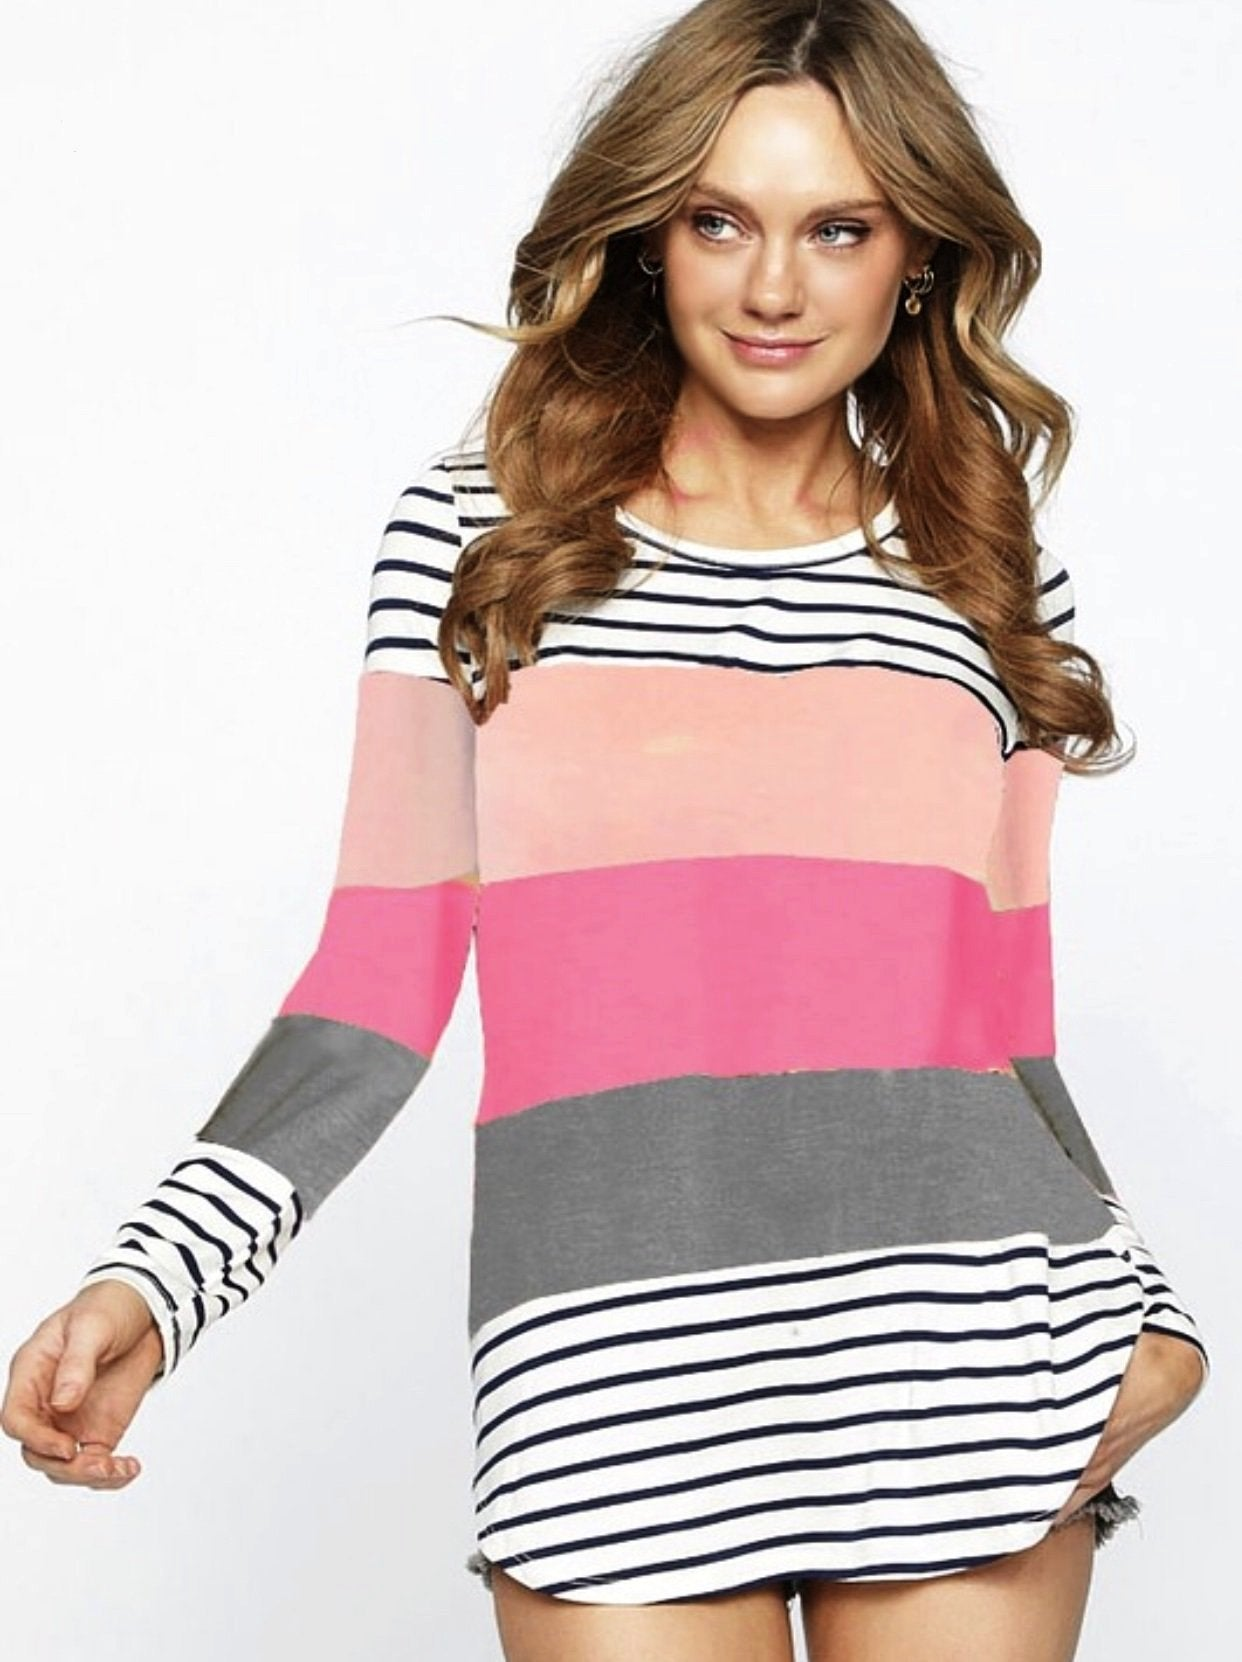 Blush/Pink/Grey Top With Black and White Stripes